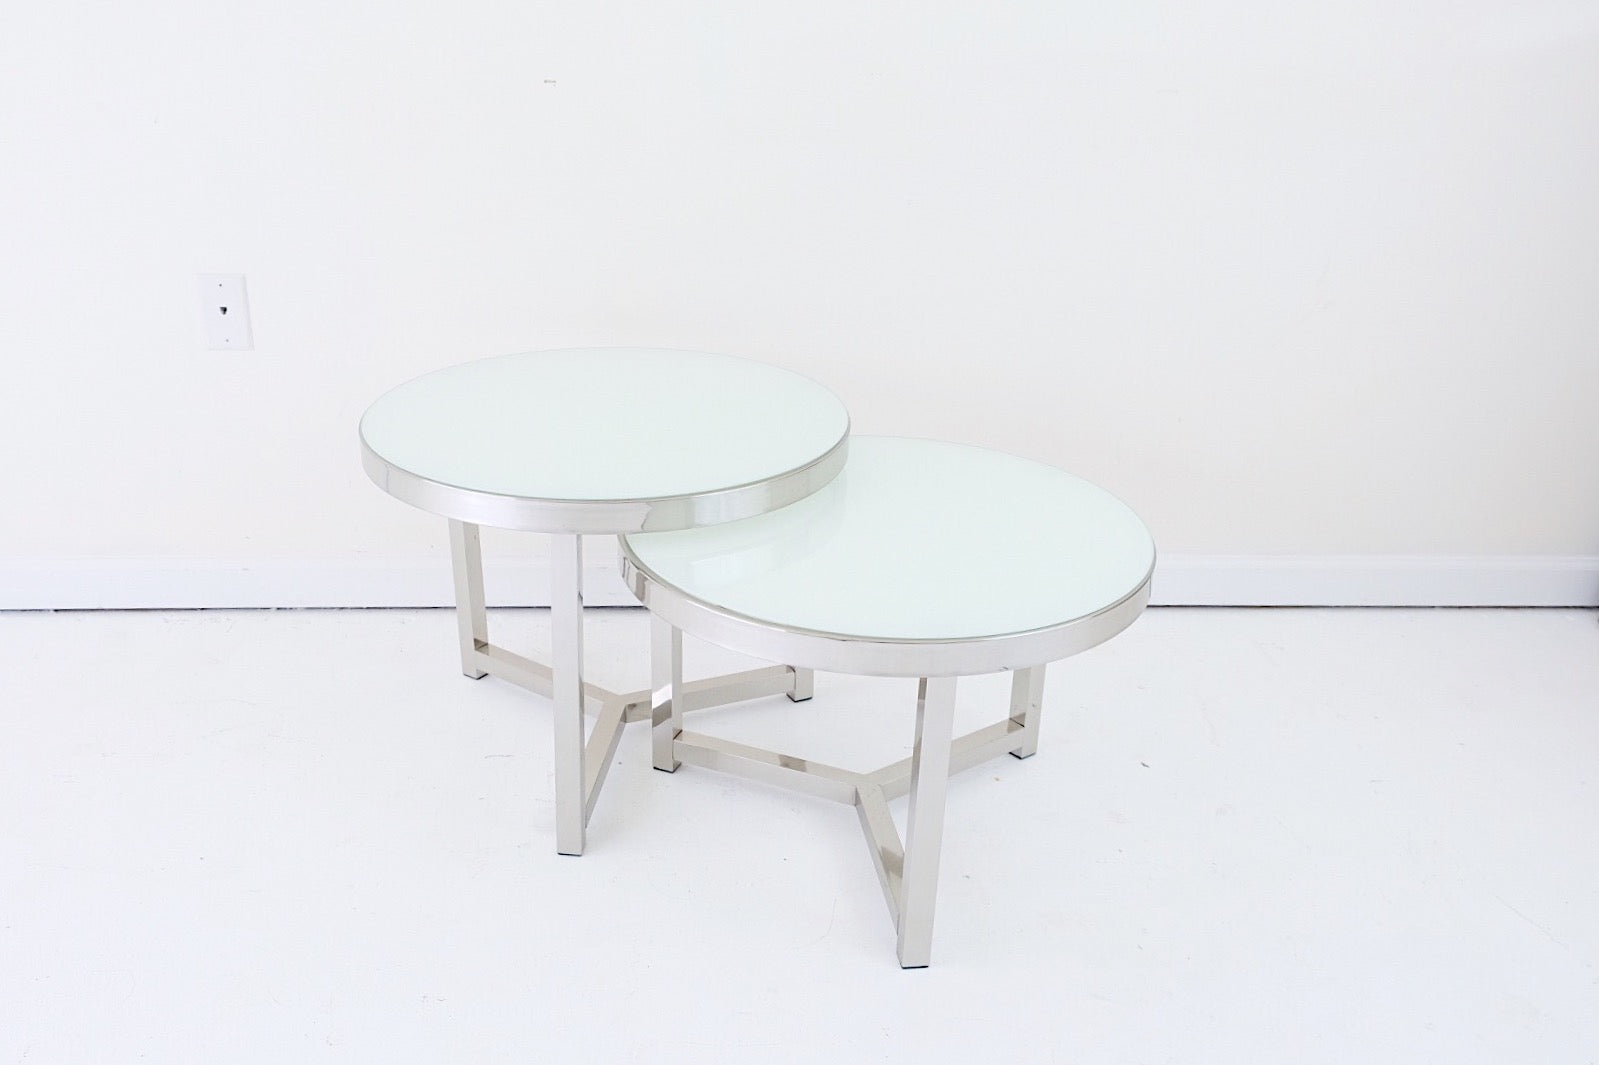 Round Chrome White Geometric Glass Top Nesting Tables